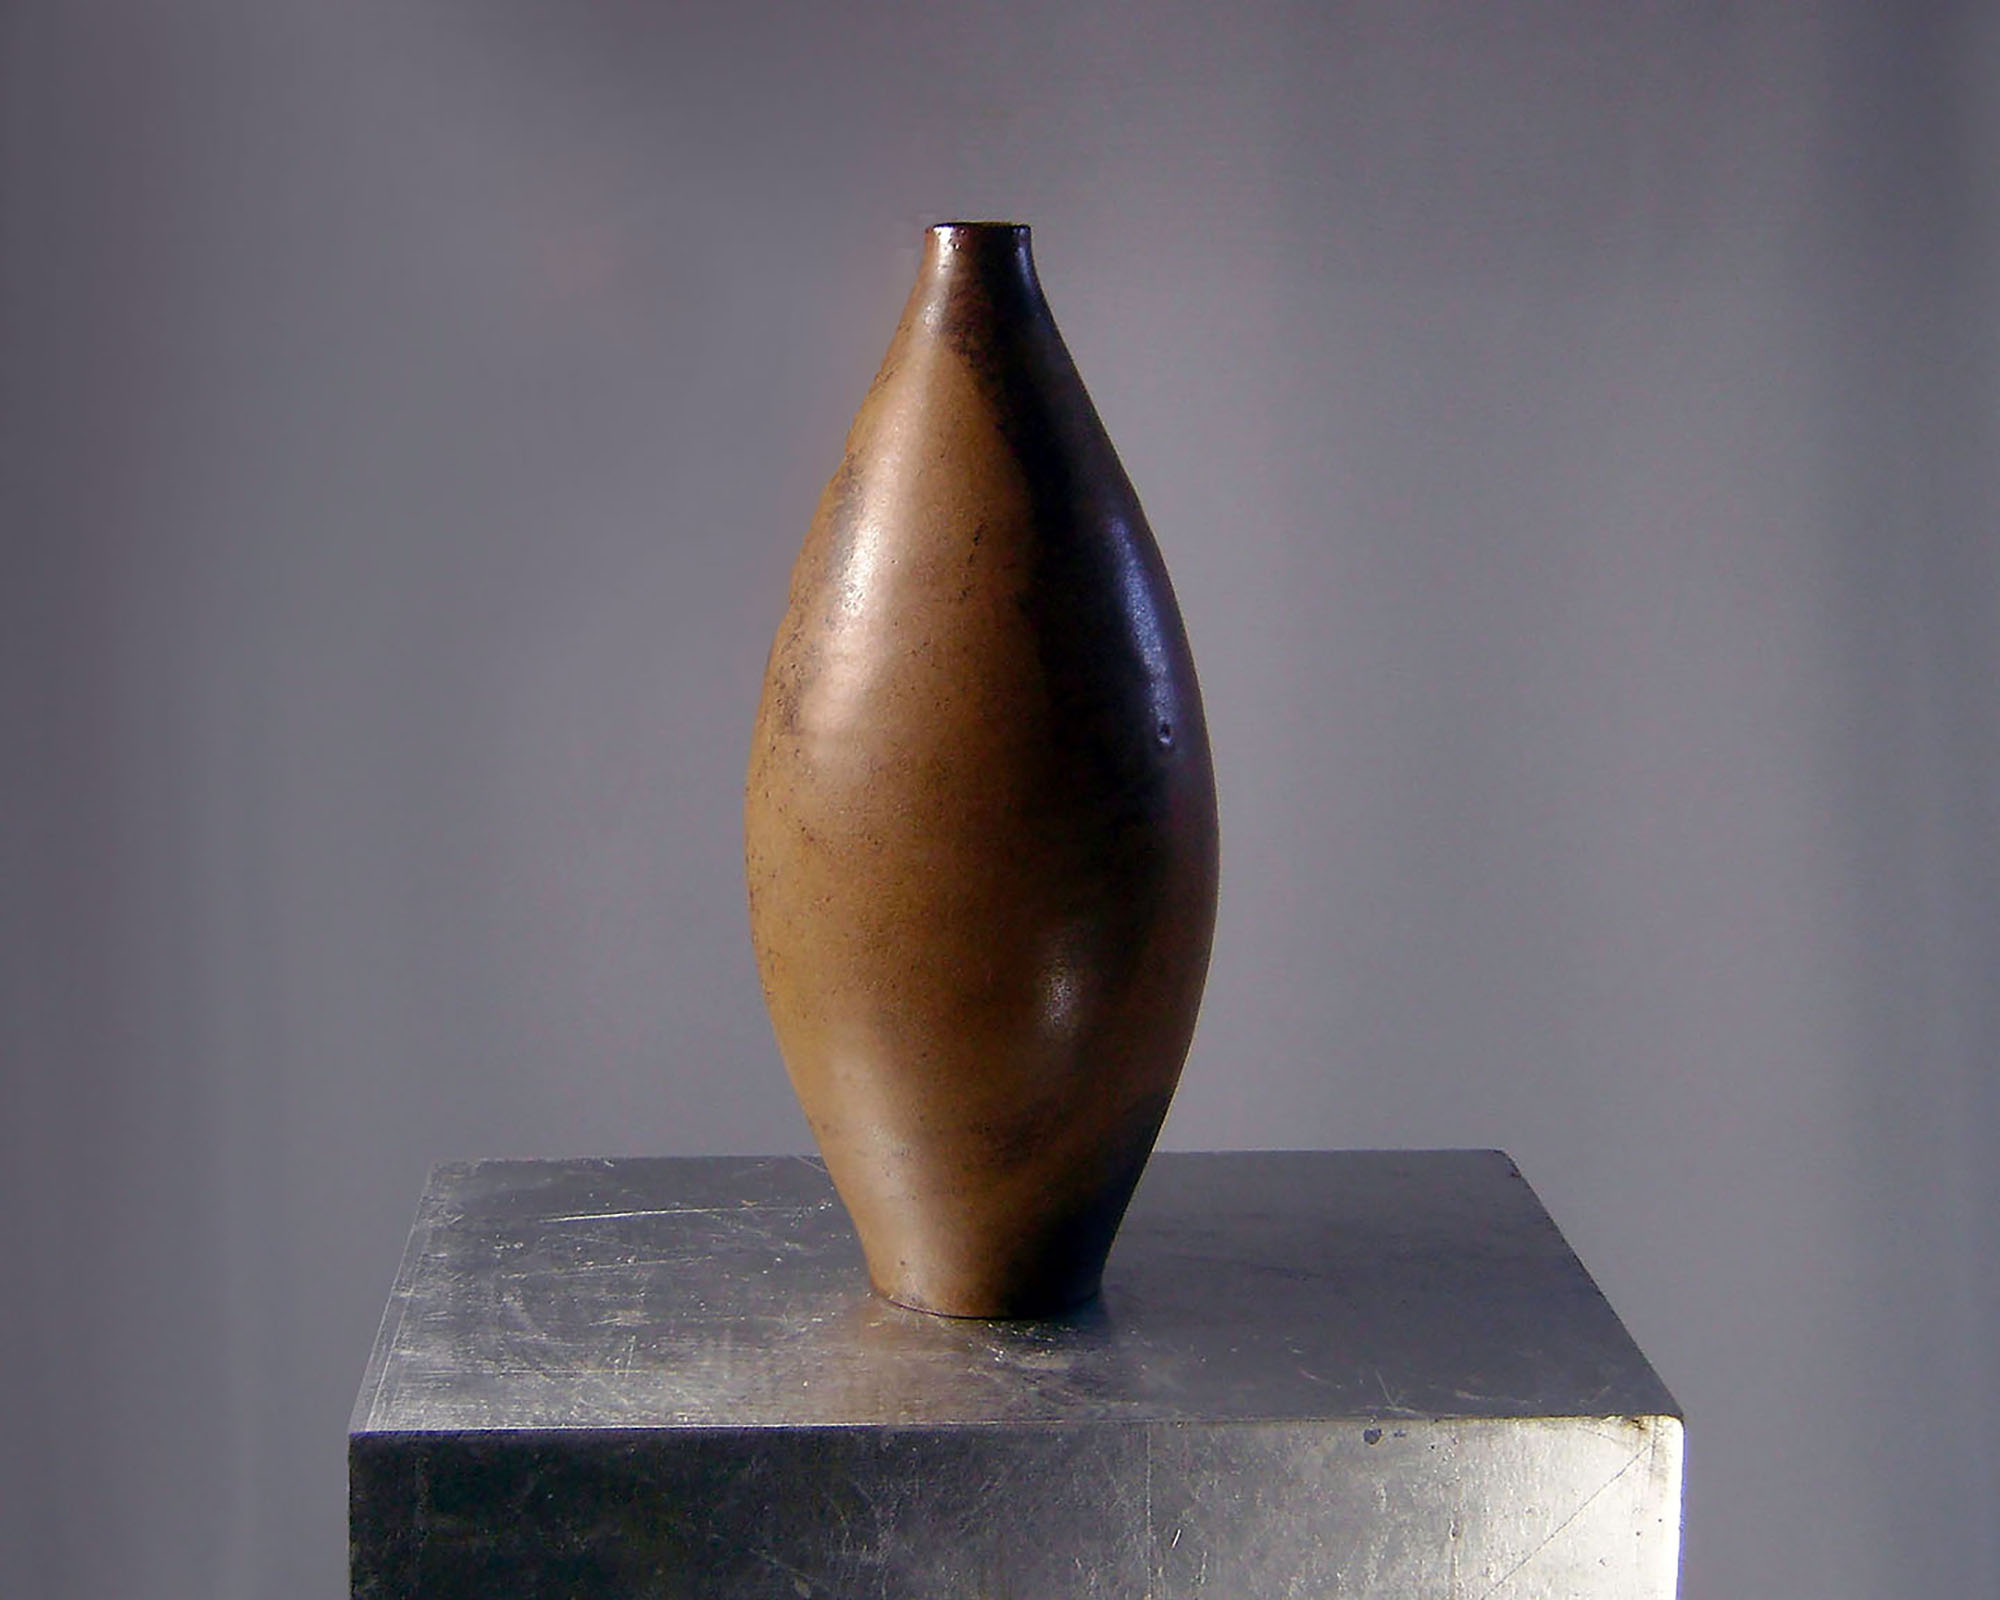 Rare Early Prototype Vase by Weston Neil Andersen